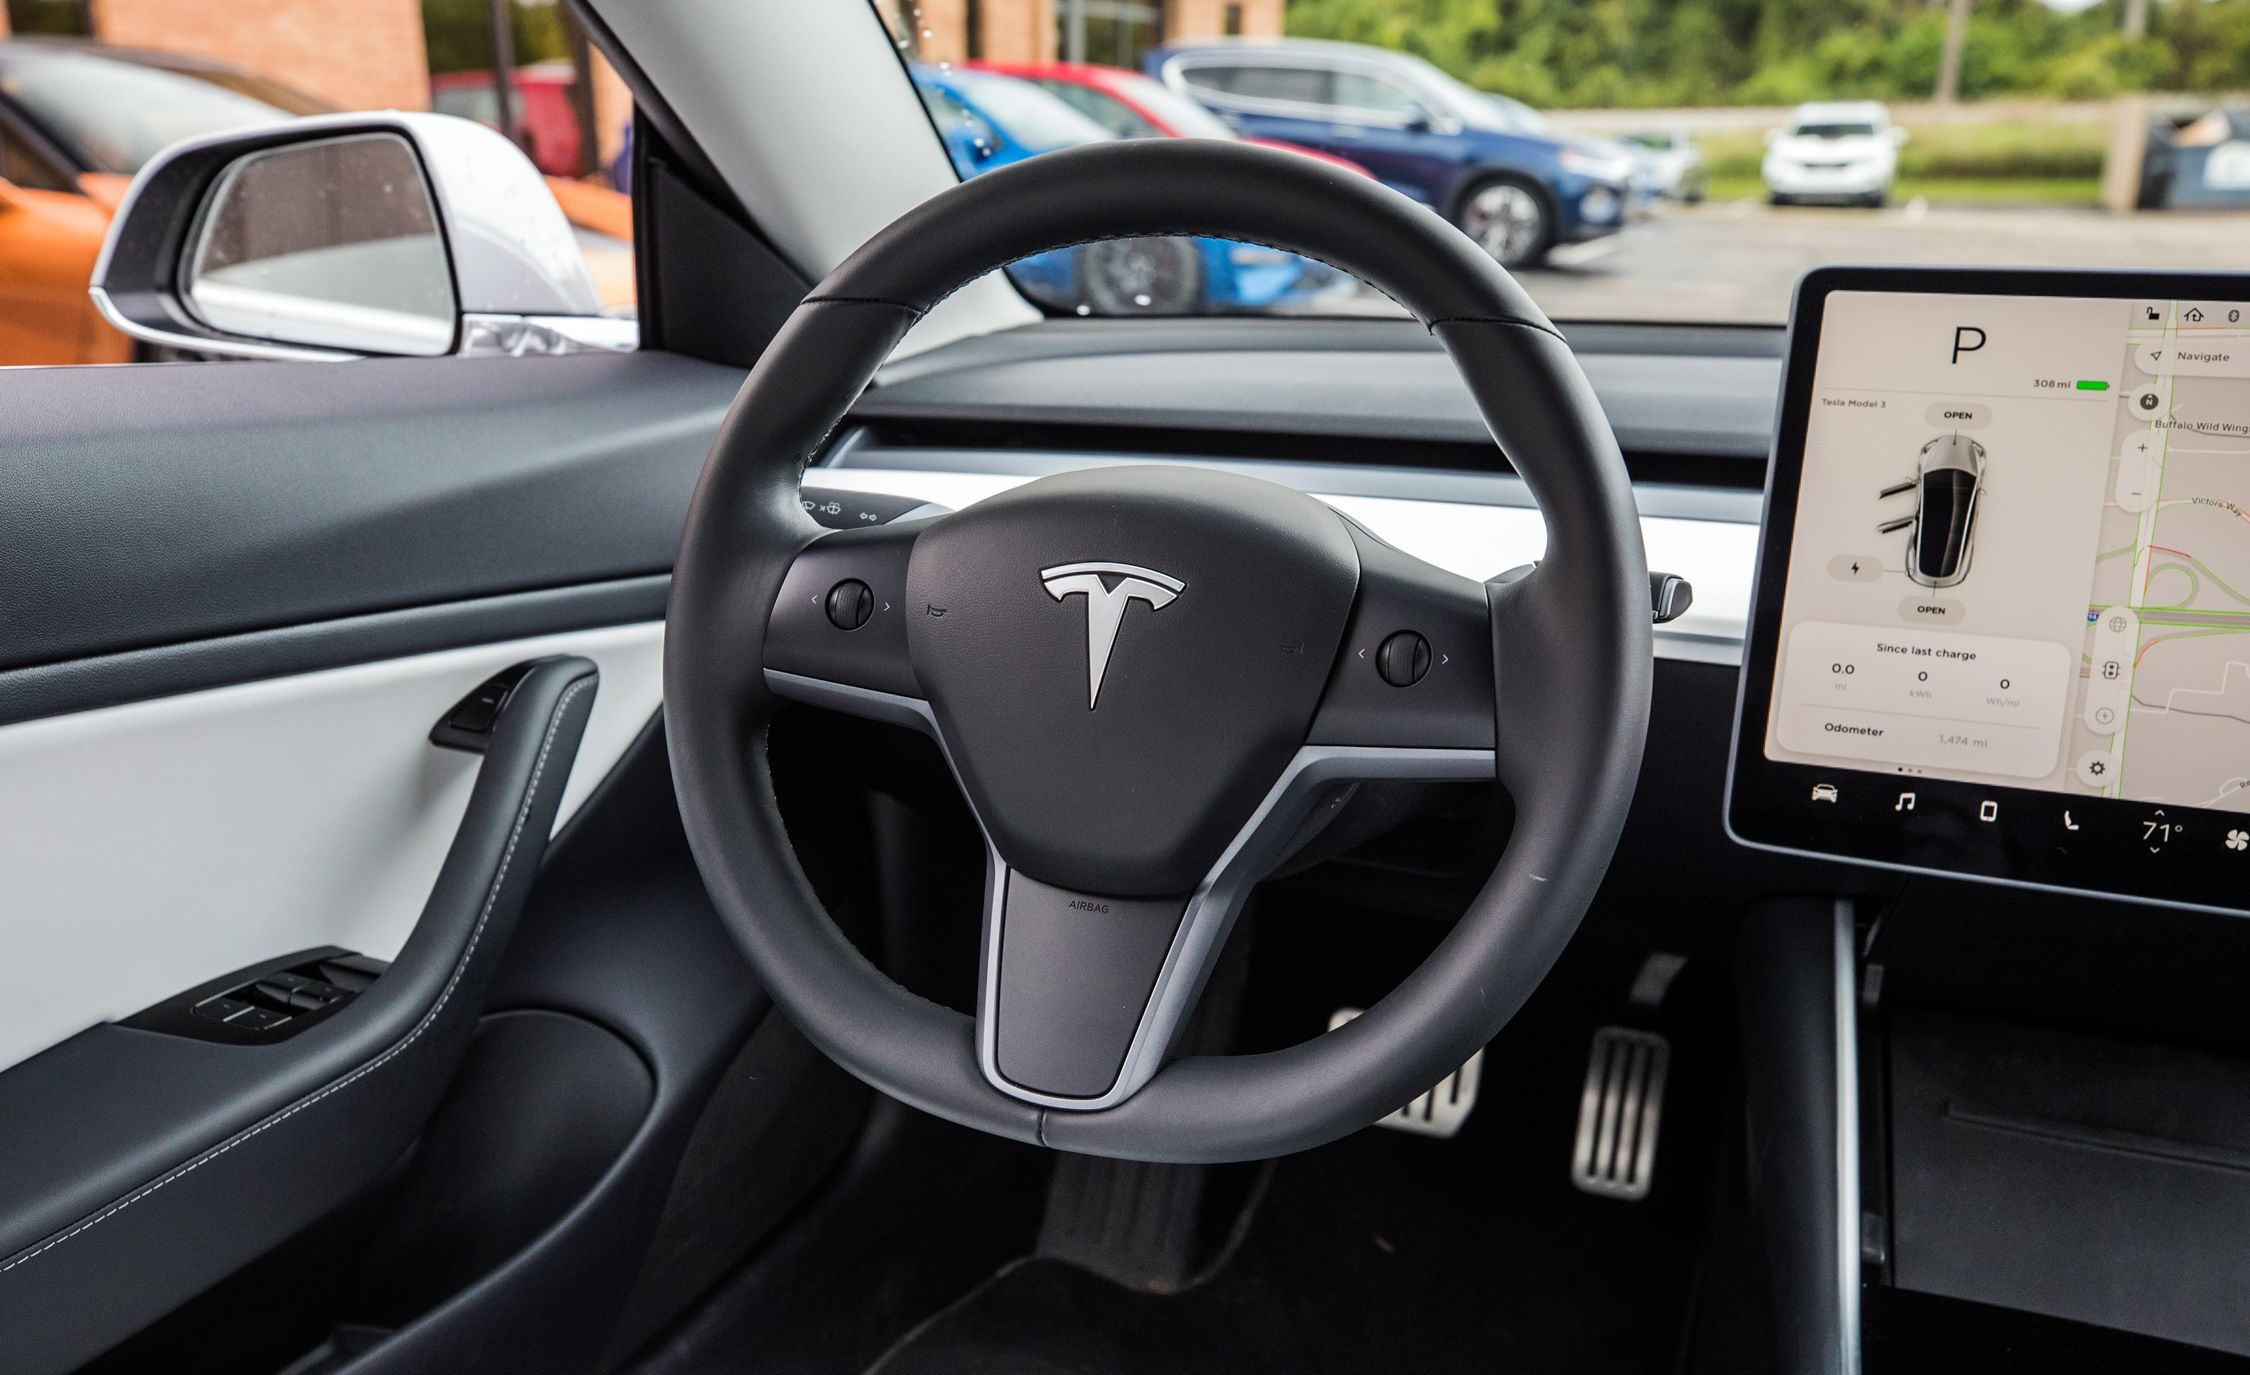 5 new Tesla vehicles coming by the end